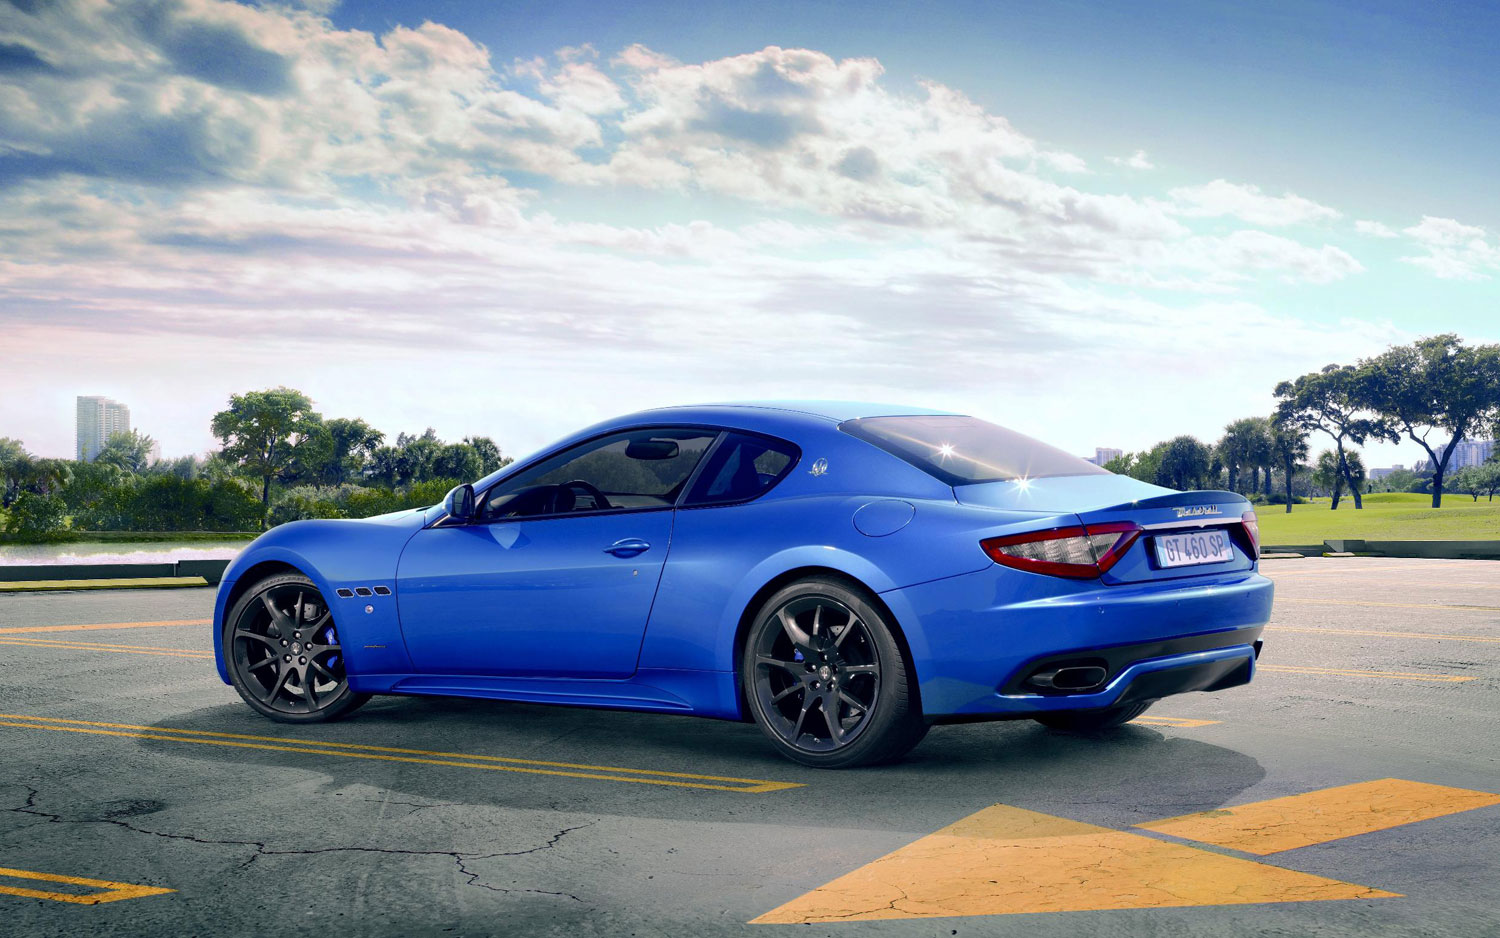 Cars maserati coupe 2013 #8